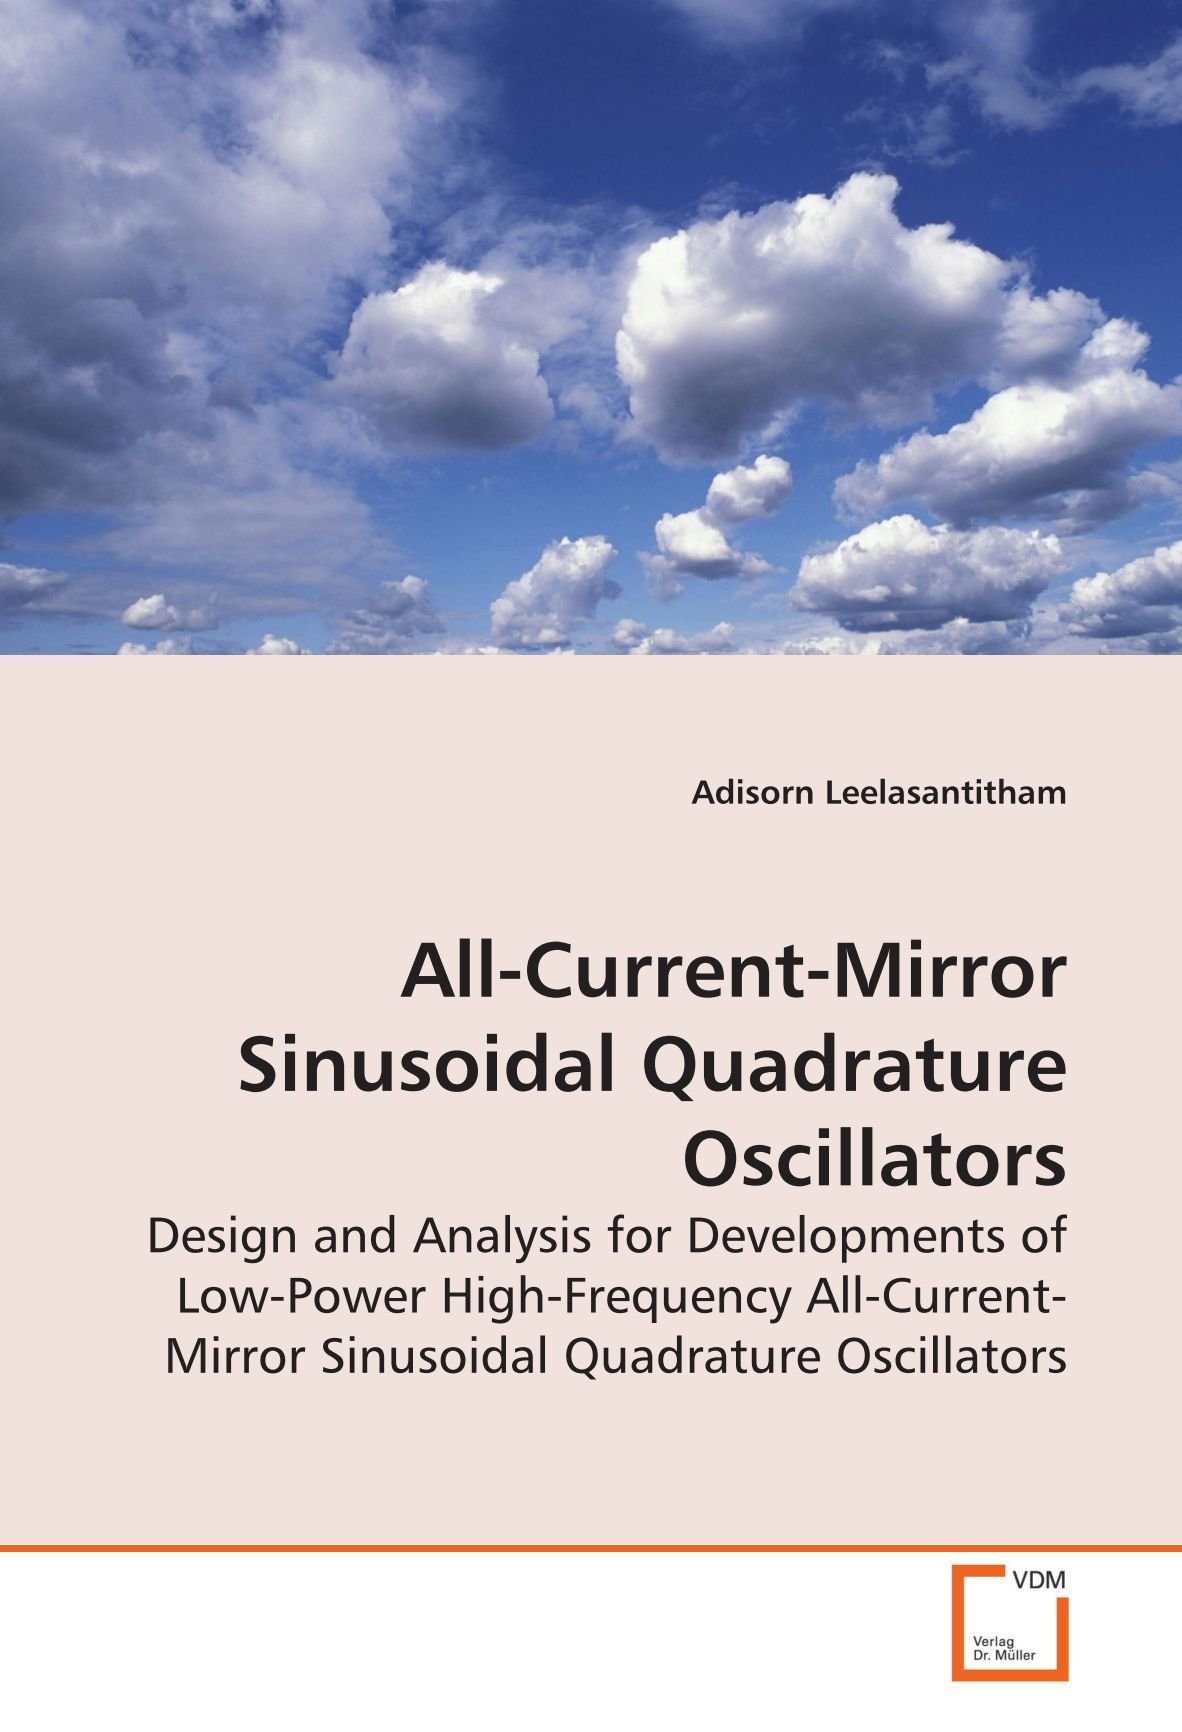 Buy All Current Mirror Sinusoidal Quadrature Oscillators Design And Oscillator Analysis For Developments Of Low Power High Frequency